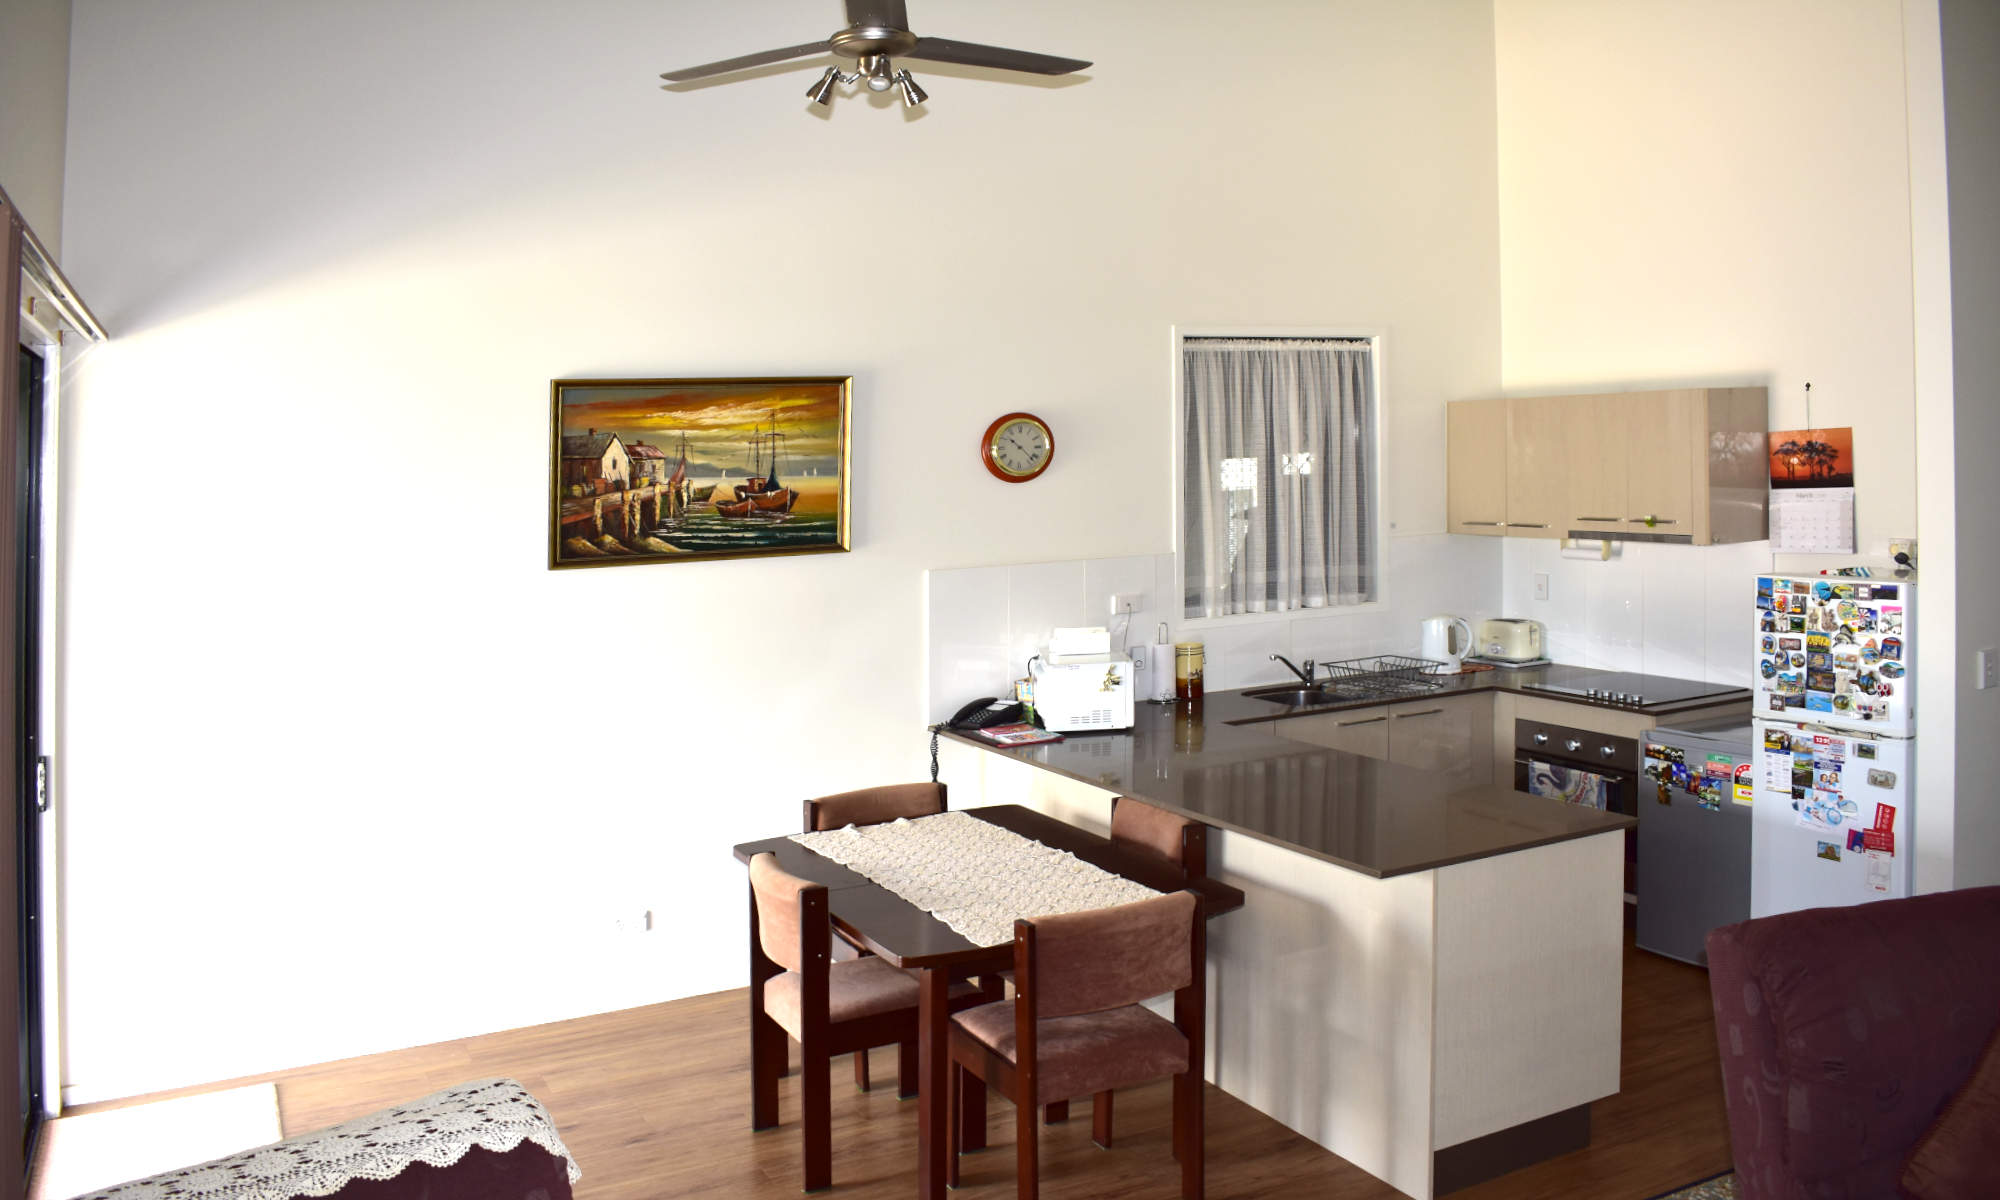 SITE_200_KITCHEN_1